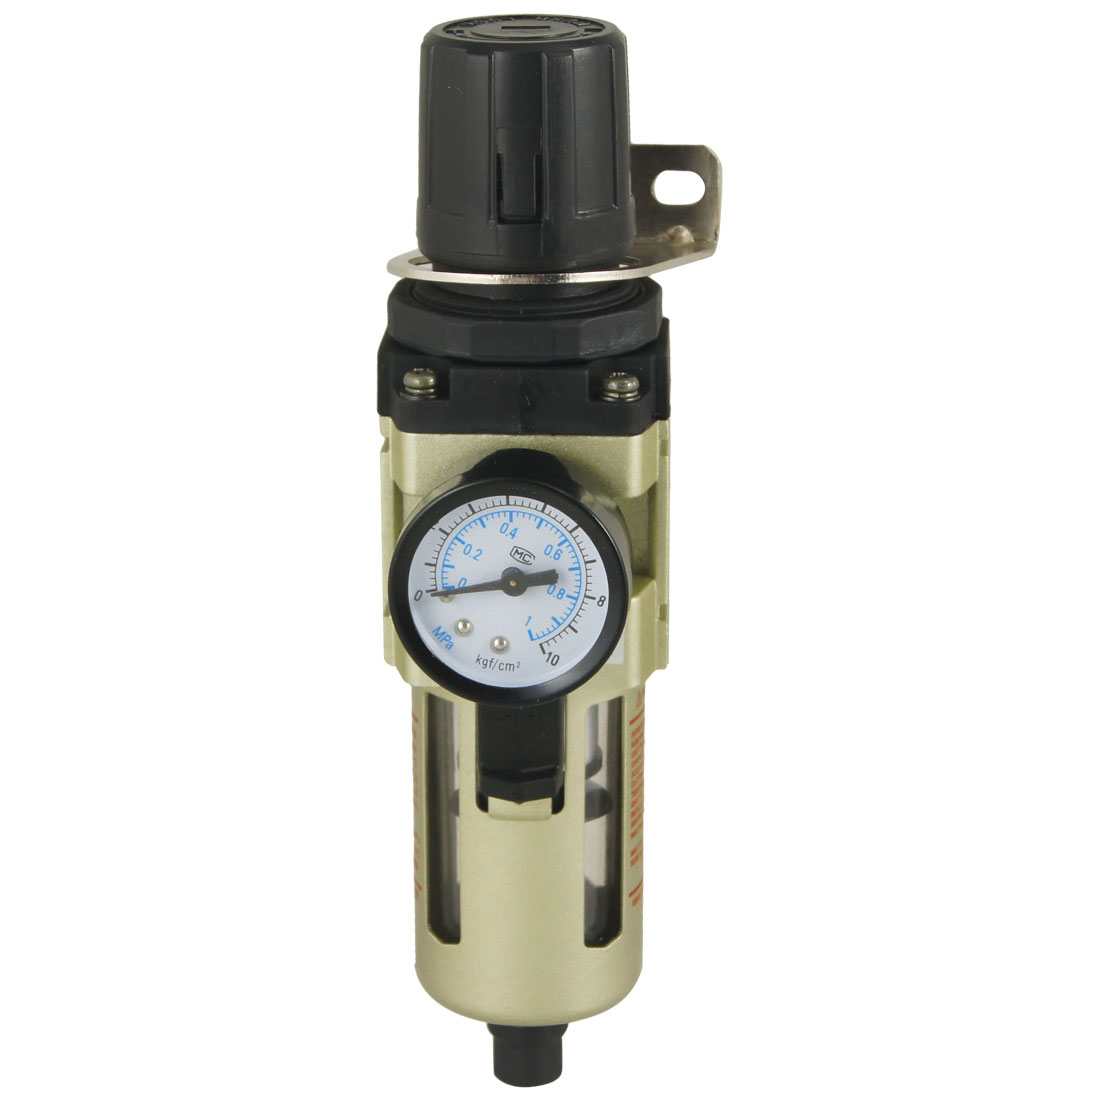 AW3000-03 0-1.0 MPa Gauge Pneumatic Air Source Treatment Pressure Regulator